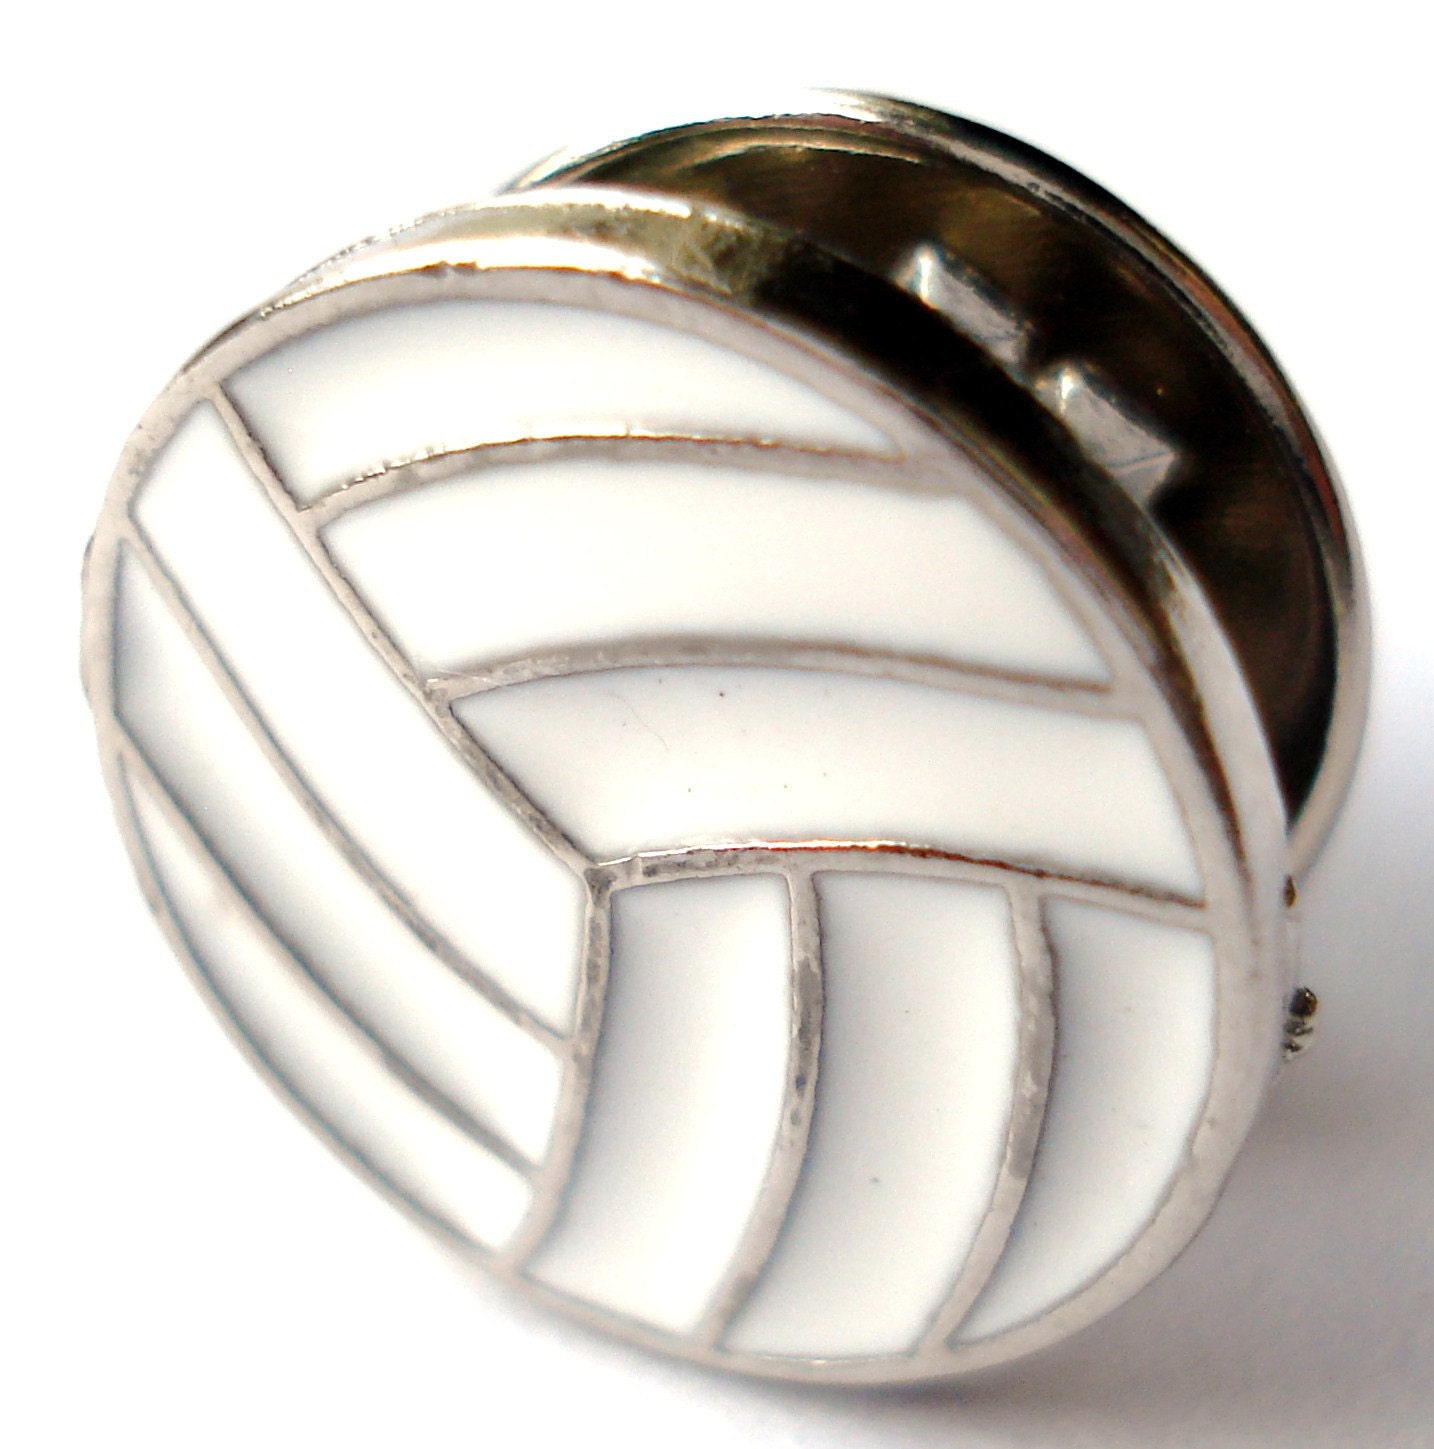 Volleyball Tie Tack, On Sale Now, Gift Box Included, Unique Gift Idea,100% ...